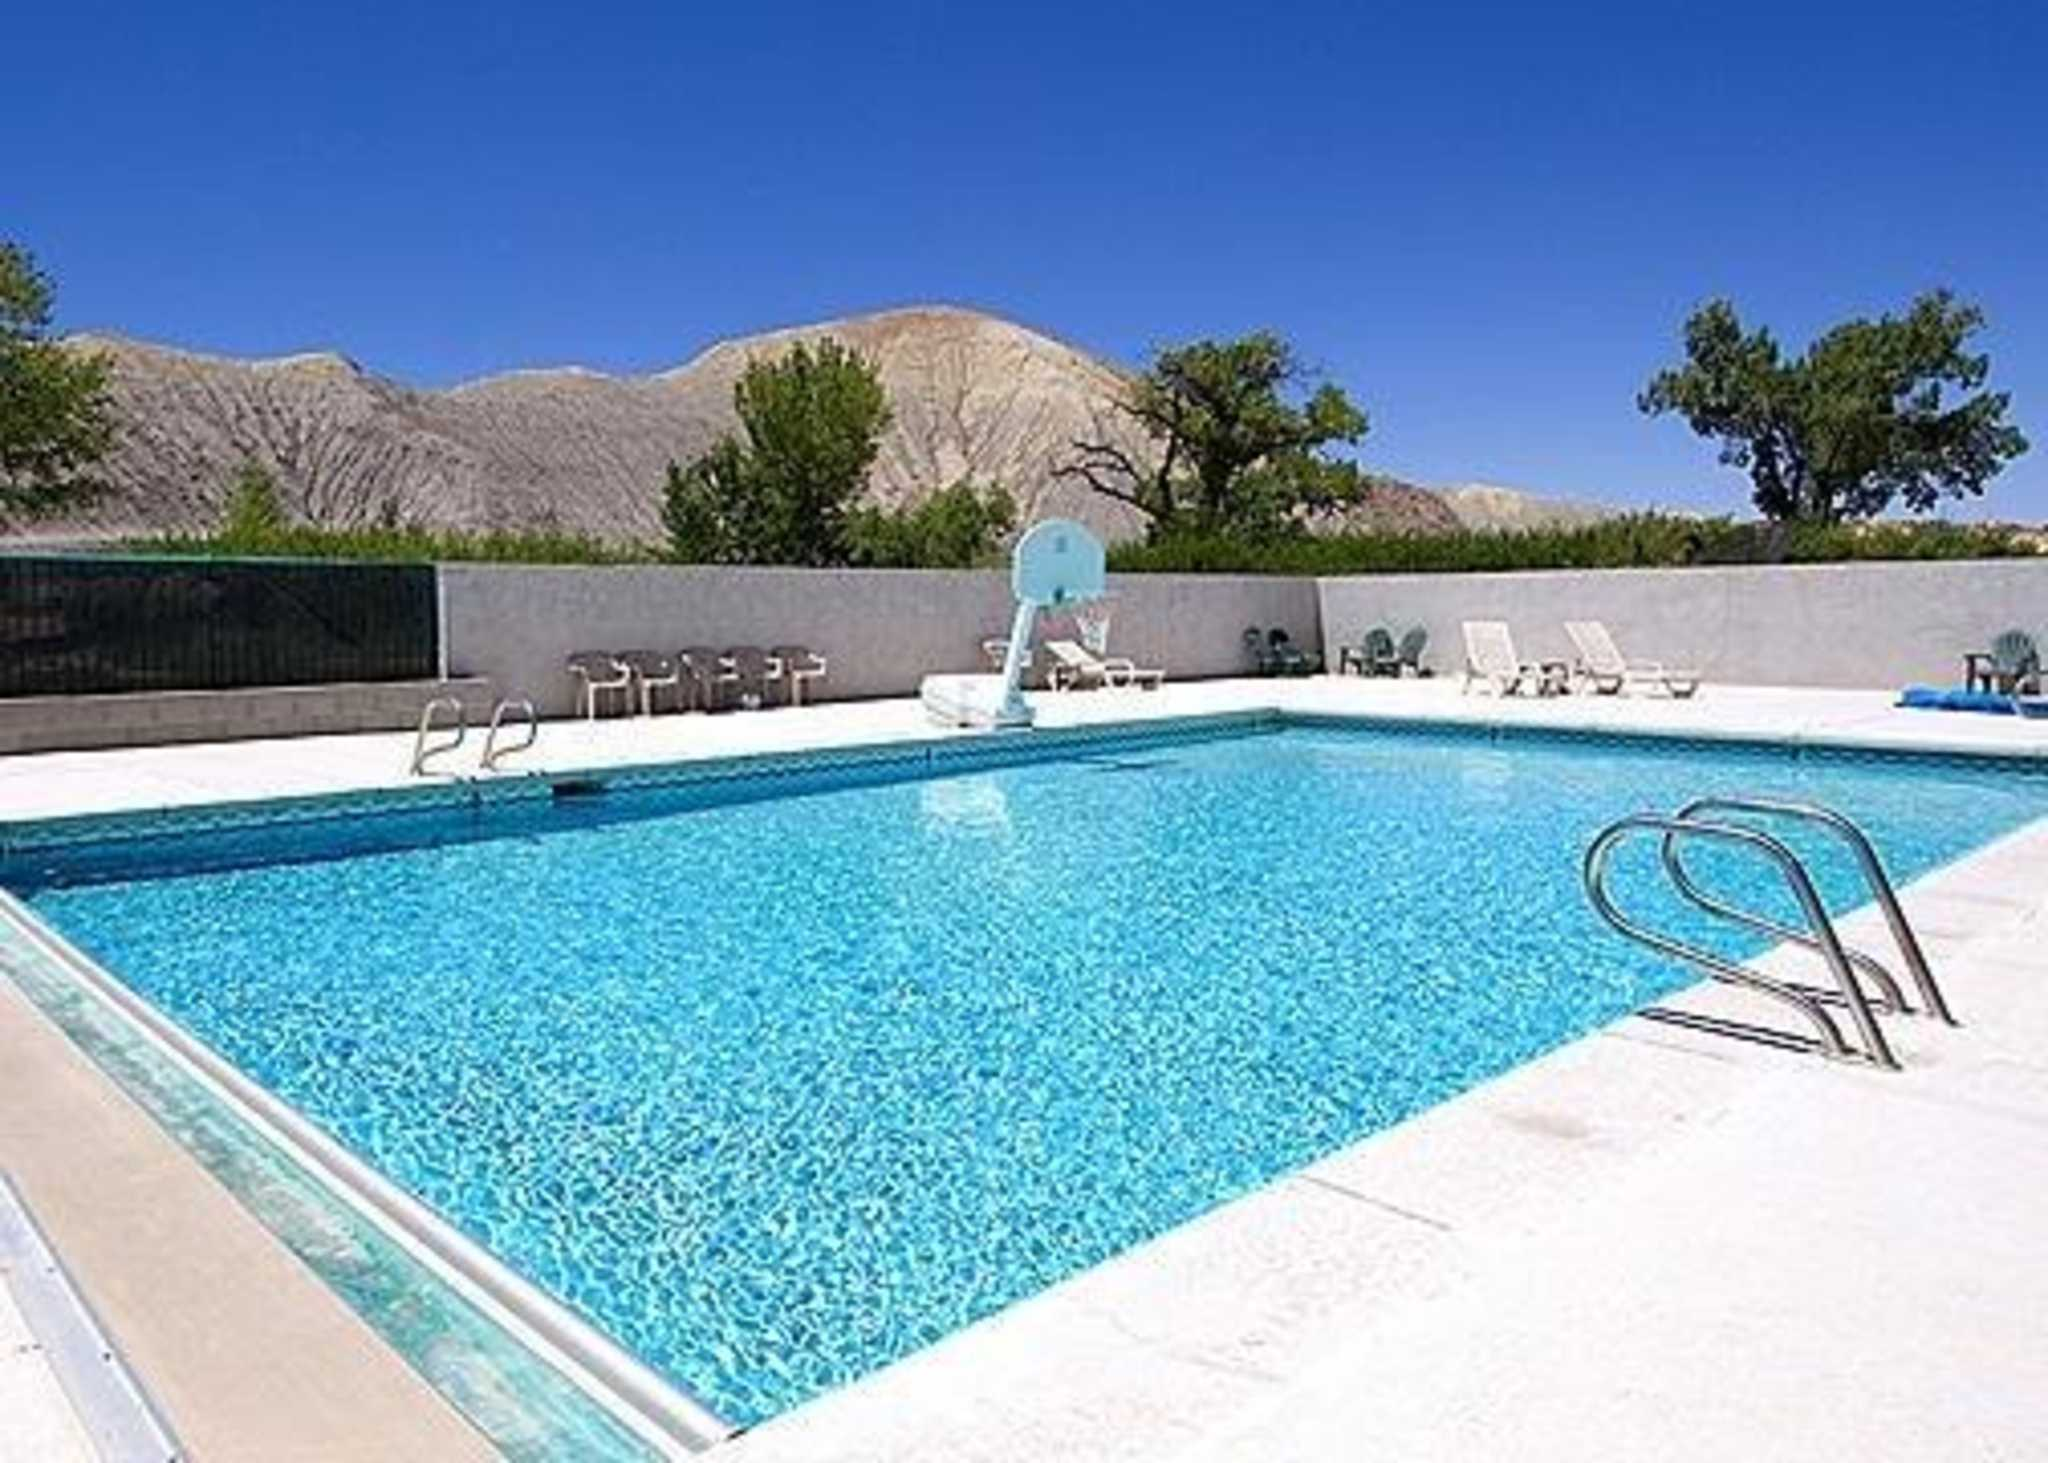 Rodeway Inn Capitol Reef Hotel In Caineville Ut Book Now